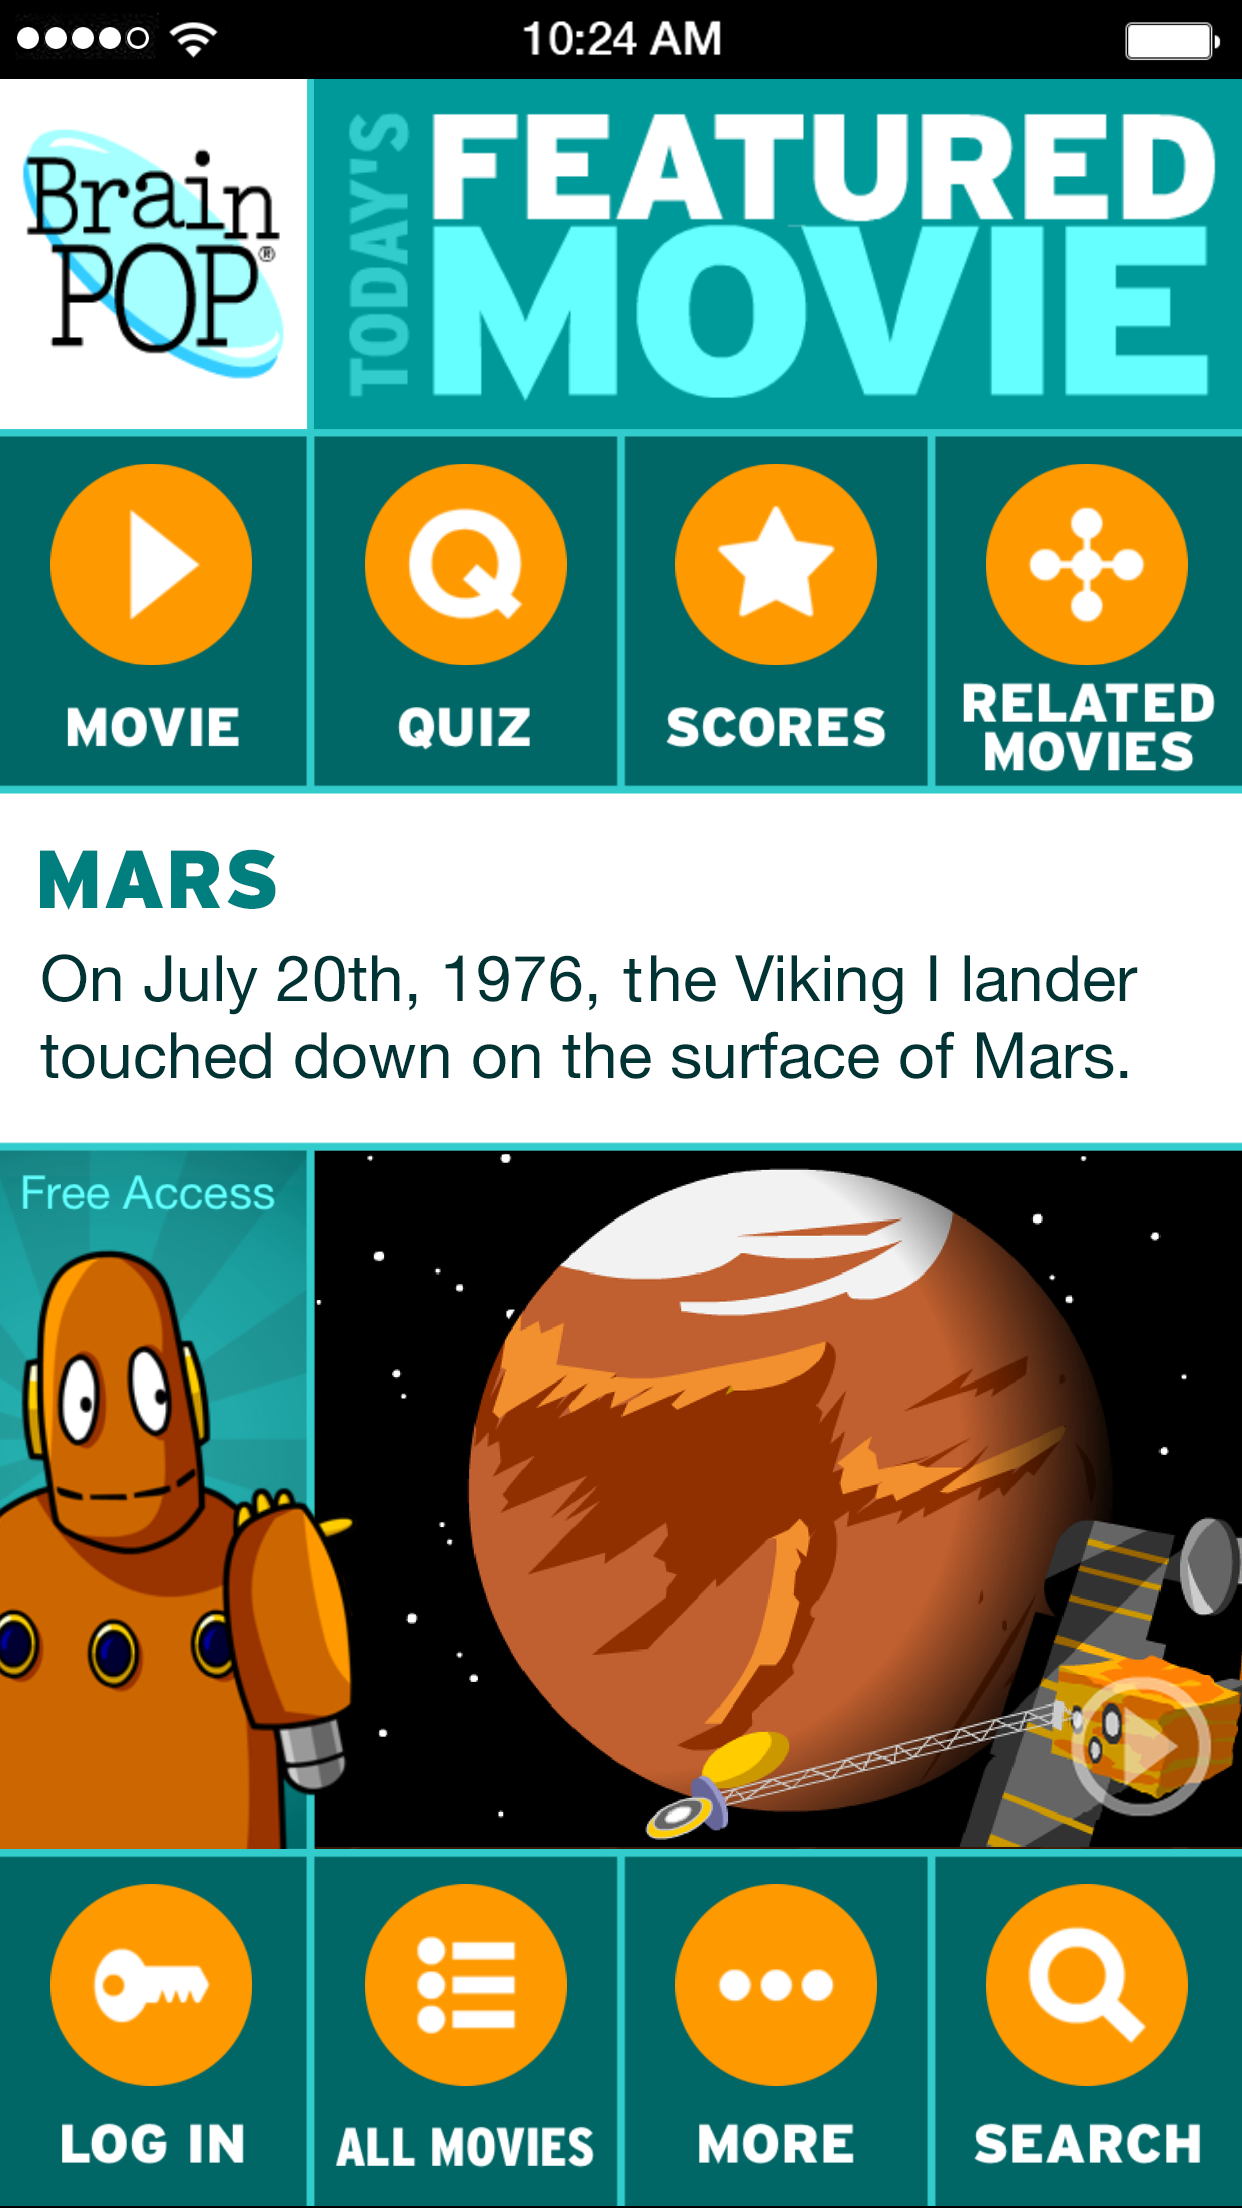 BrainPOP Featured Movie Screenshot